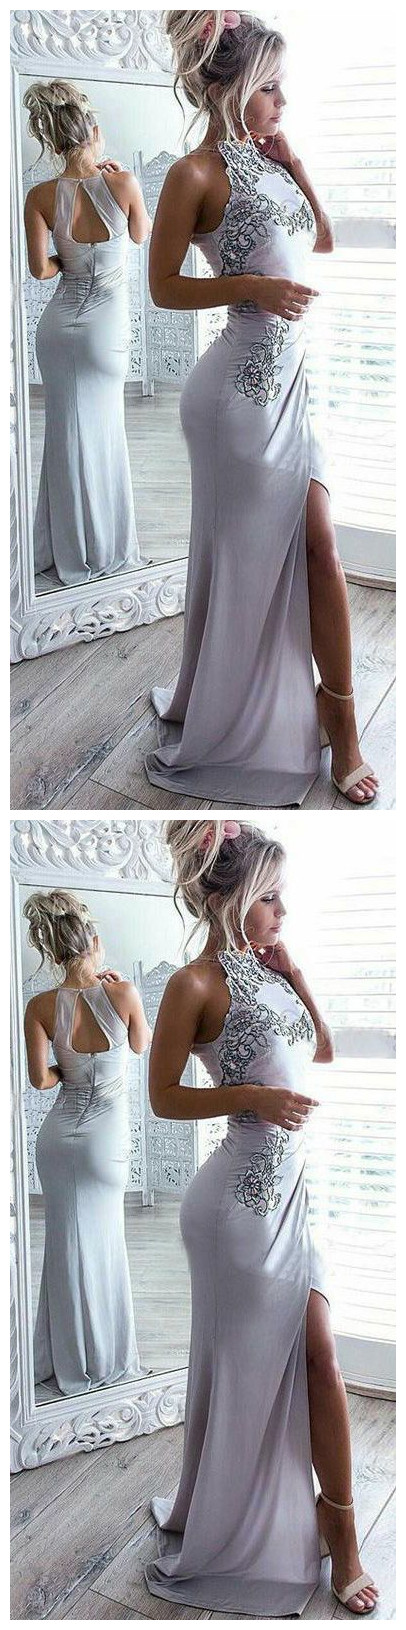 Sexy Light Grey Open Back Prom Dress with Appliques Split,Long Prom Dress,Sexy Party Dress,Formal Dress